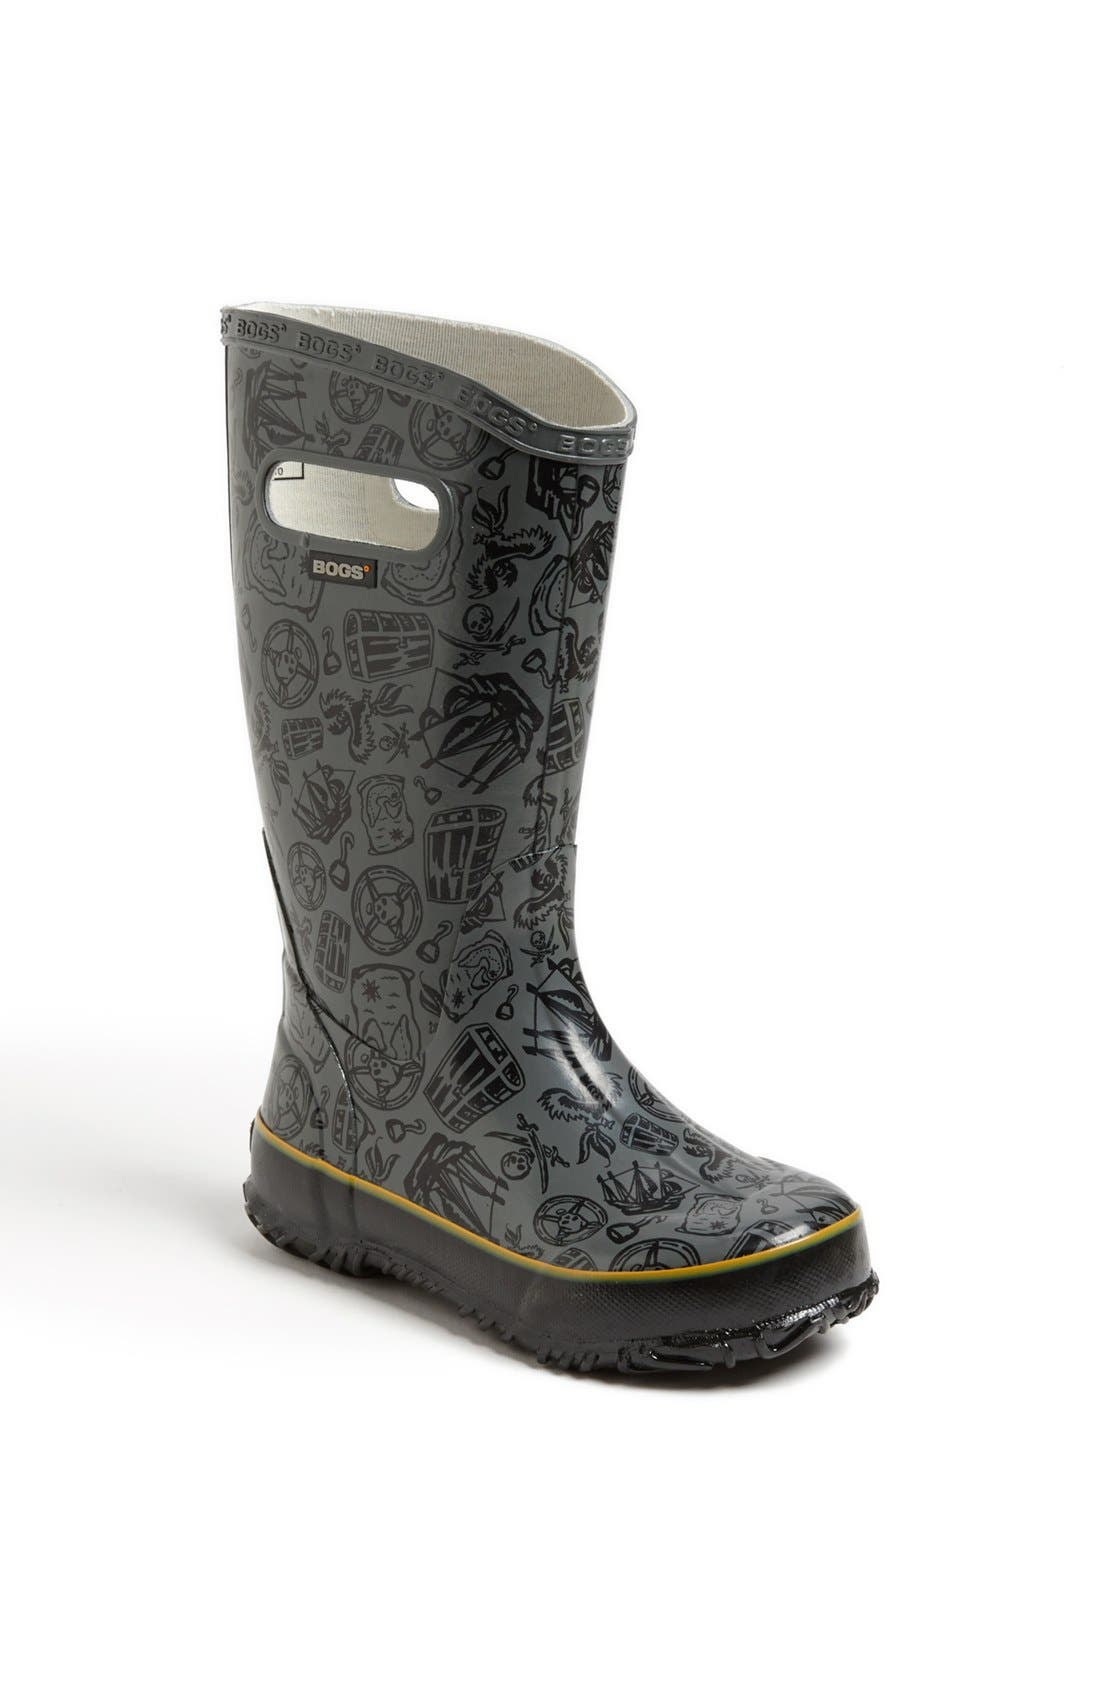 Main Image - Bogs 'Pirate' Rain Boot (Walker, Toddler, Little Kid & Big Kid)